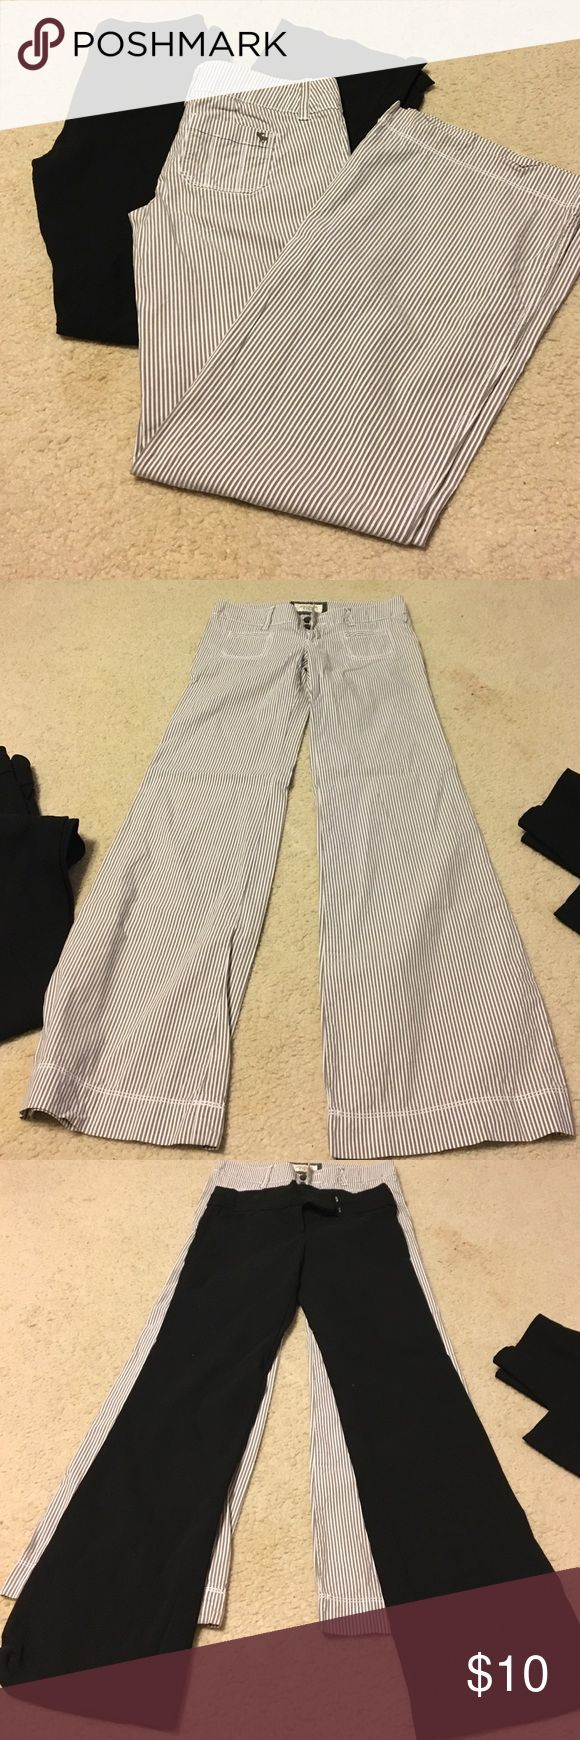 Bundle of dress pants Bundle of two pairs of dress pants. Black pair are candies size 3 with flare/boot cut, and white and brown pinstripe pair are Abercrombie and fitch size 00 reg. Both are in great condition barely worn. Abercrombie & Fitch Pants Trousers